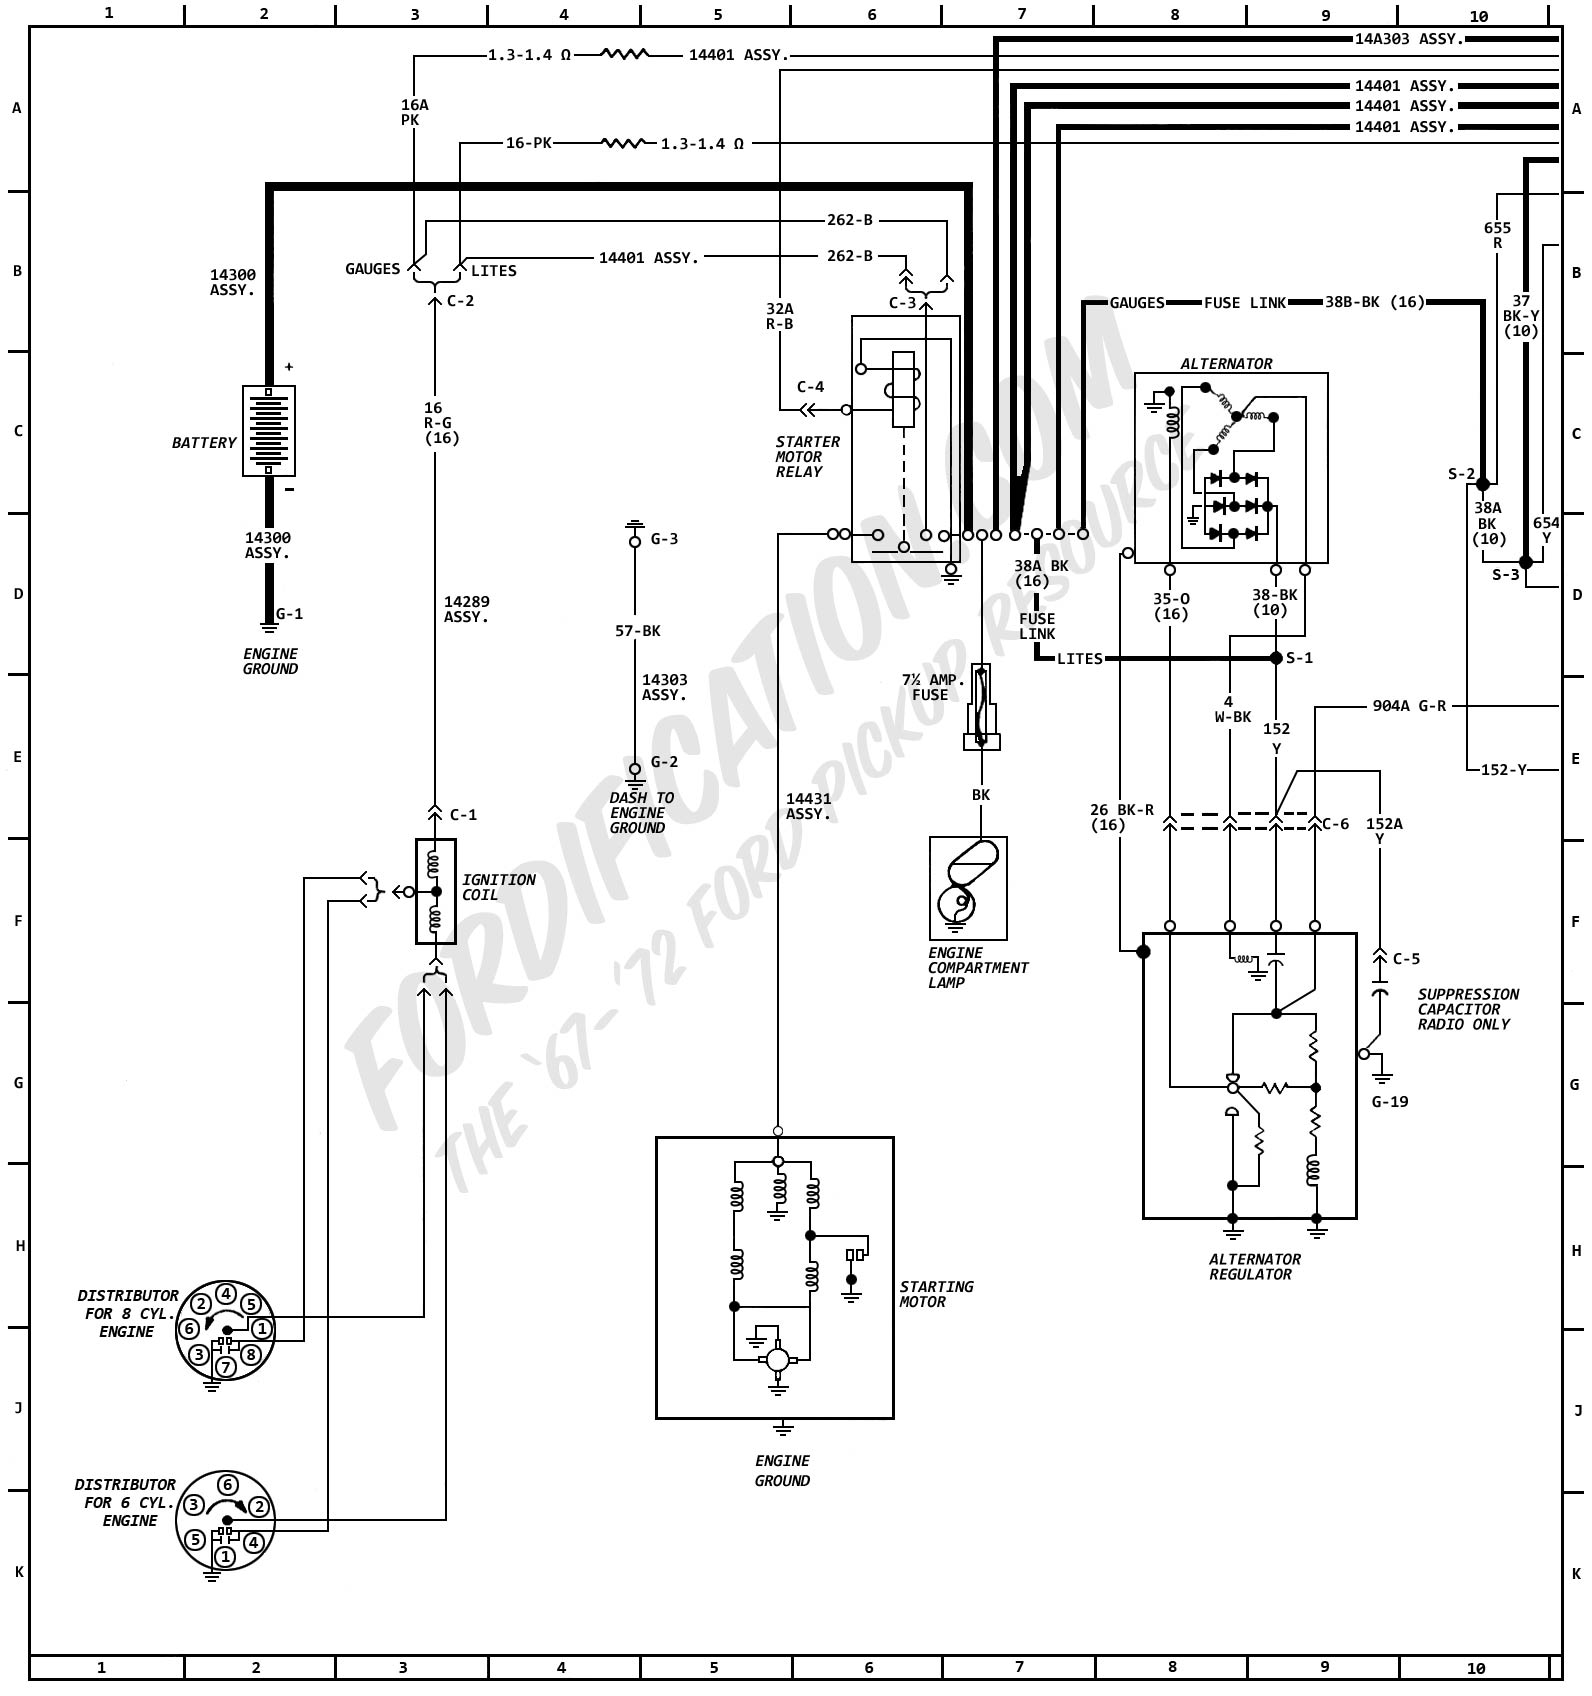 Wiring Diagram For A 1972 Ford Amfm Radio Content Resource Of Switched Schematic Electrical Online F100 Schematics Rh Delvato Co